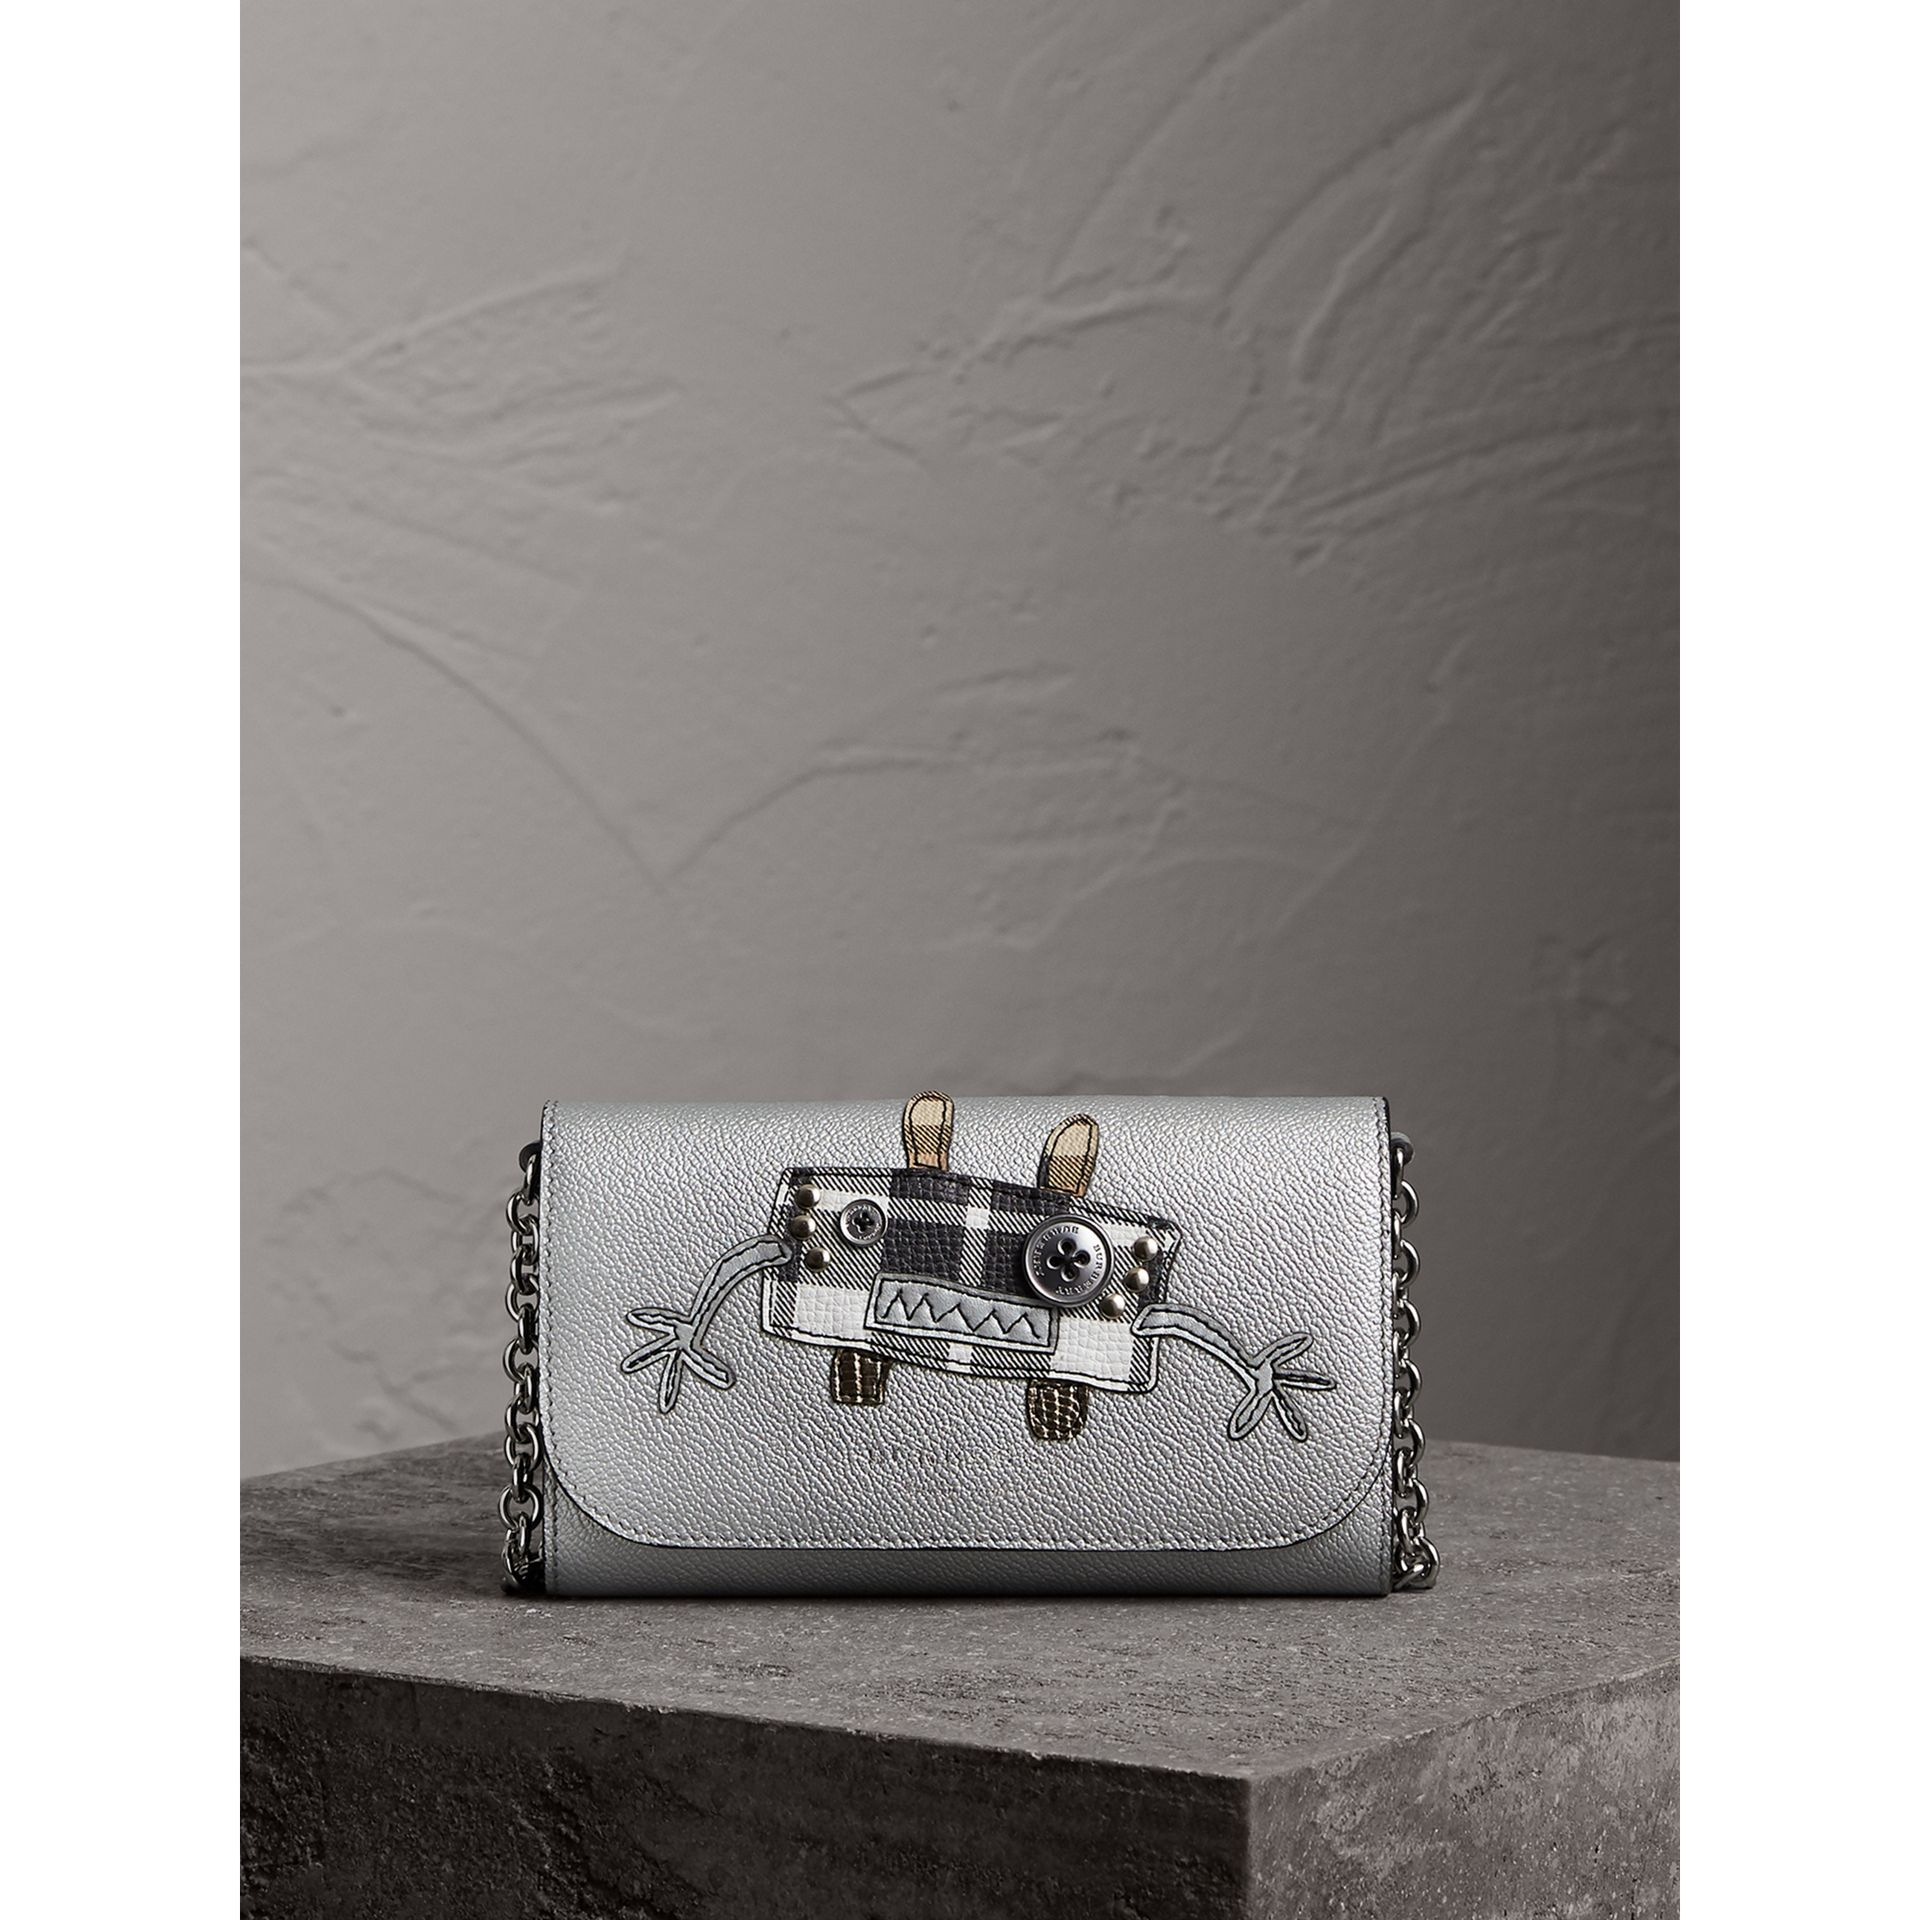 Creature Appliqué Metallic Leather Wallet with Chain in Silver/multicolour - Women | Burberry - gallery image 5